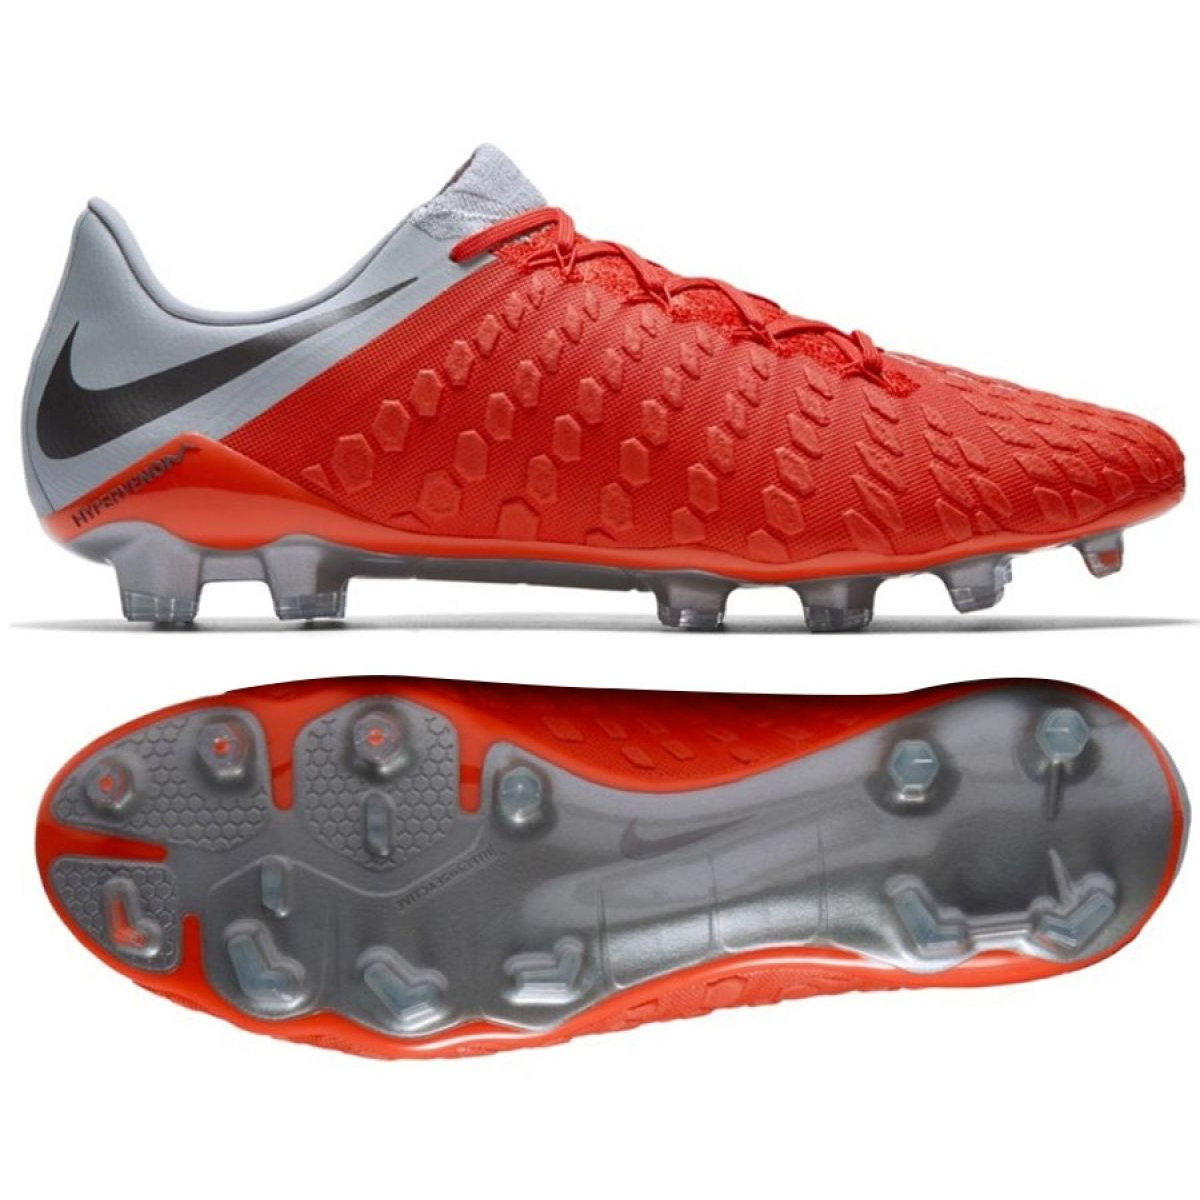 new style 39b6d 06ffa Football shoes Nike Hypervenom Phantom 3 Elite Fg M AJ3805-600